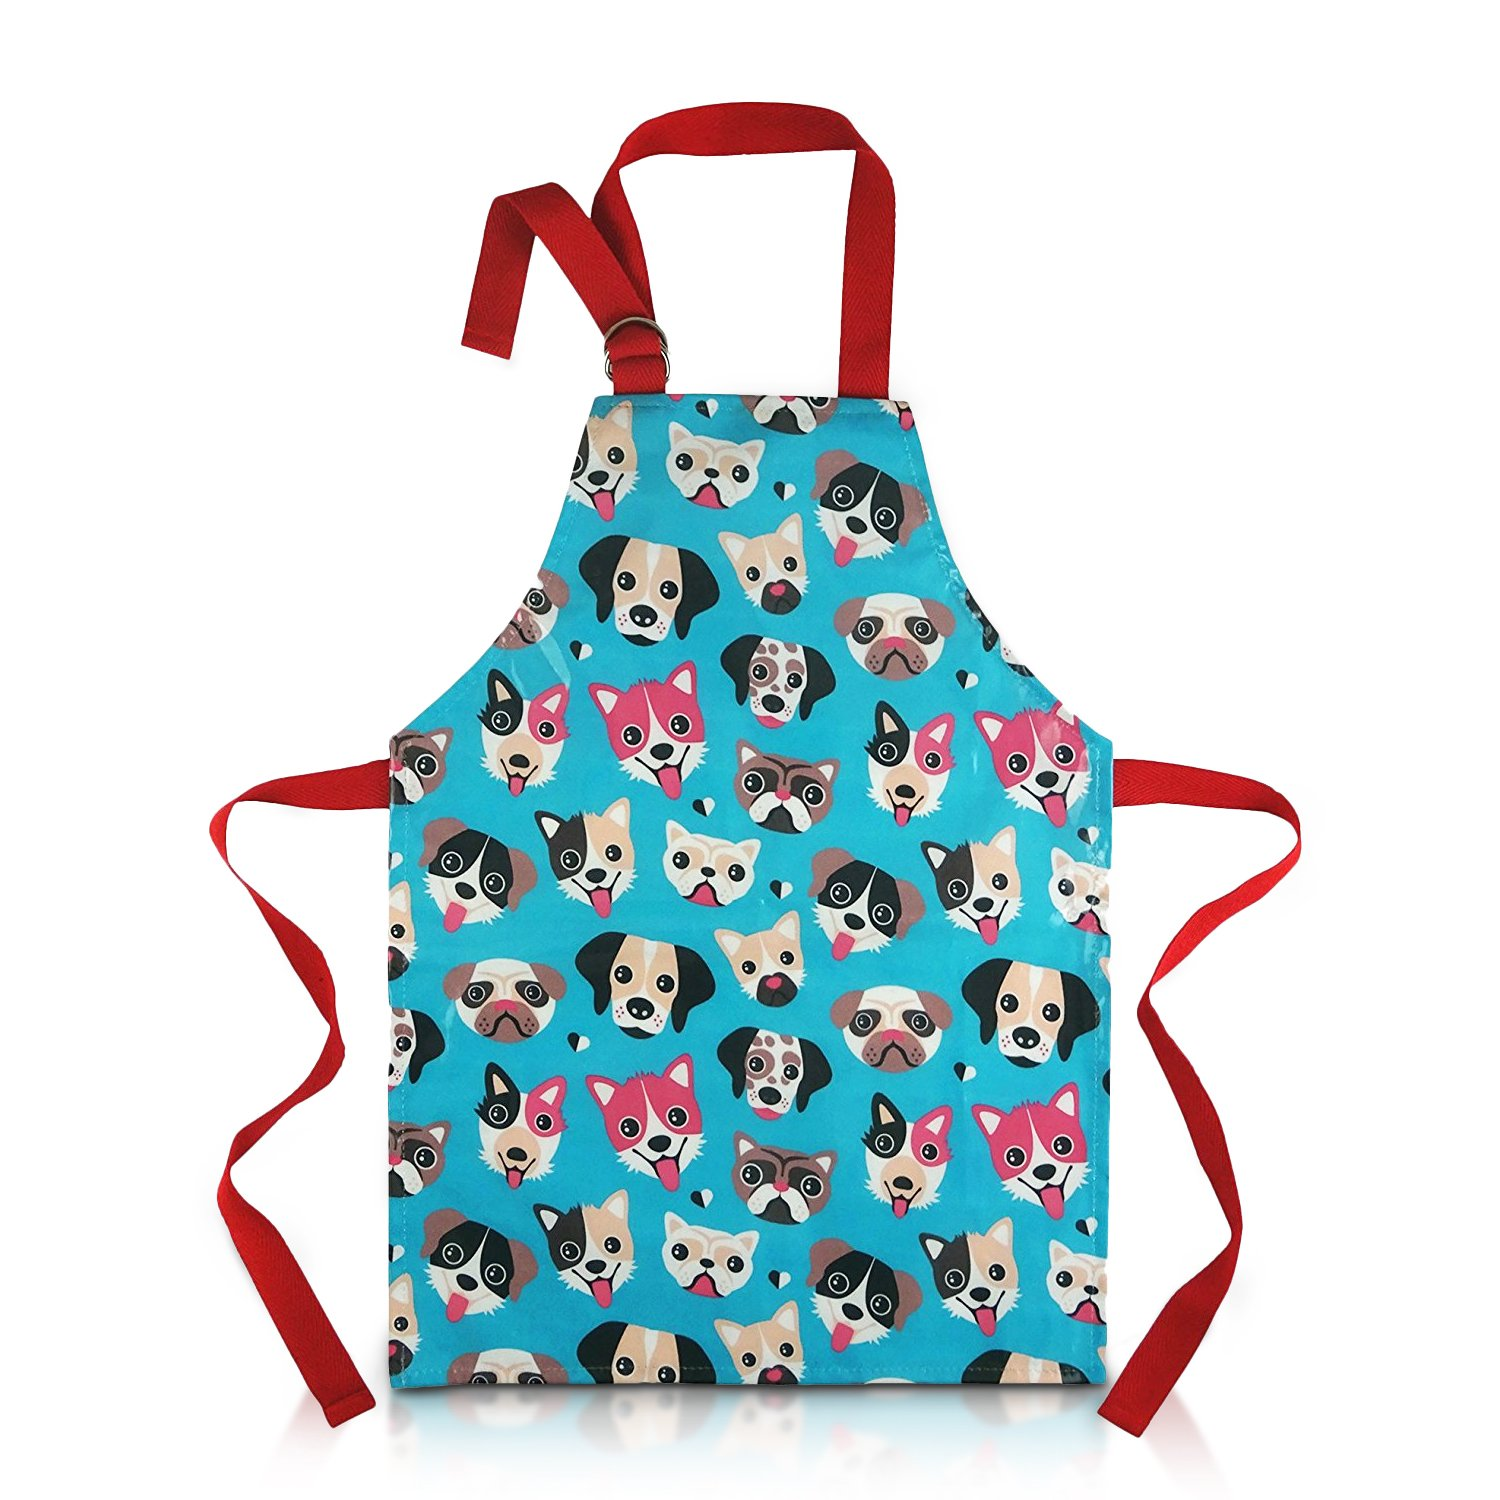 Child Apron For Cooking and Painting - Unique Cute Dog Print in Wipe Clean PVC Coated Cotton for Toddlers Age 4-7 (medium, blue) by Dinky Ninky